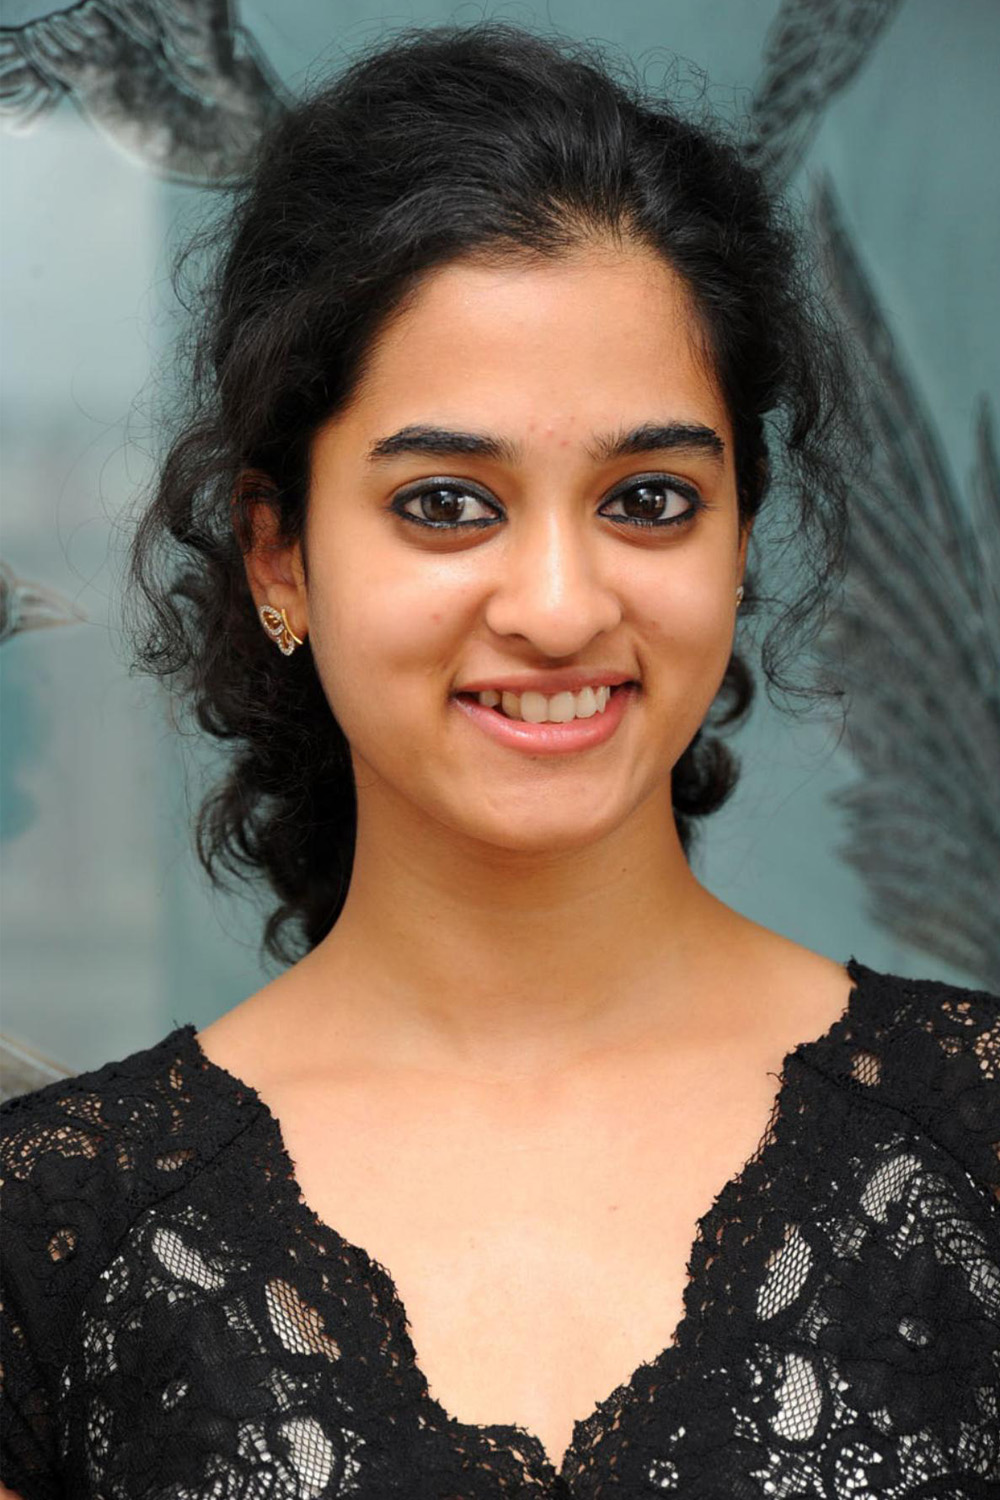 nanditha tollywood actress | hd wallpapers (high definition) | free